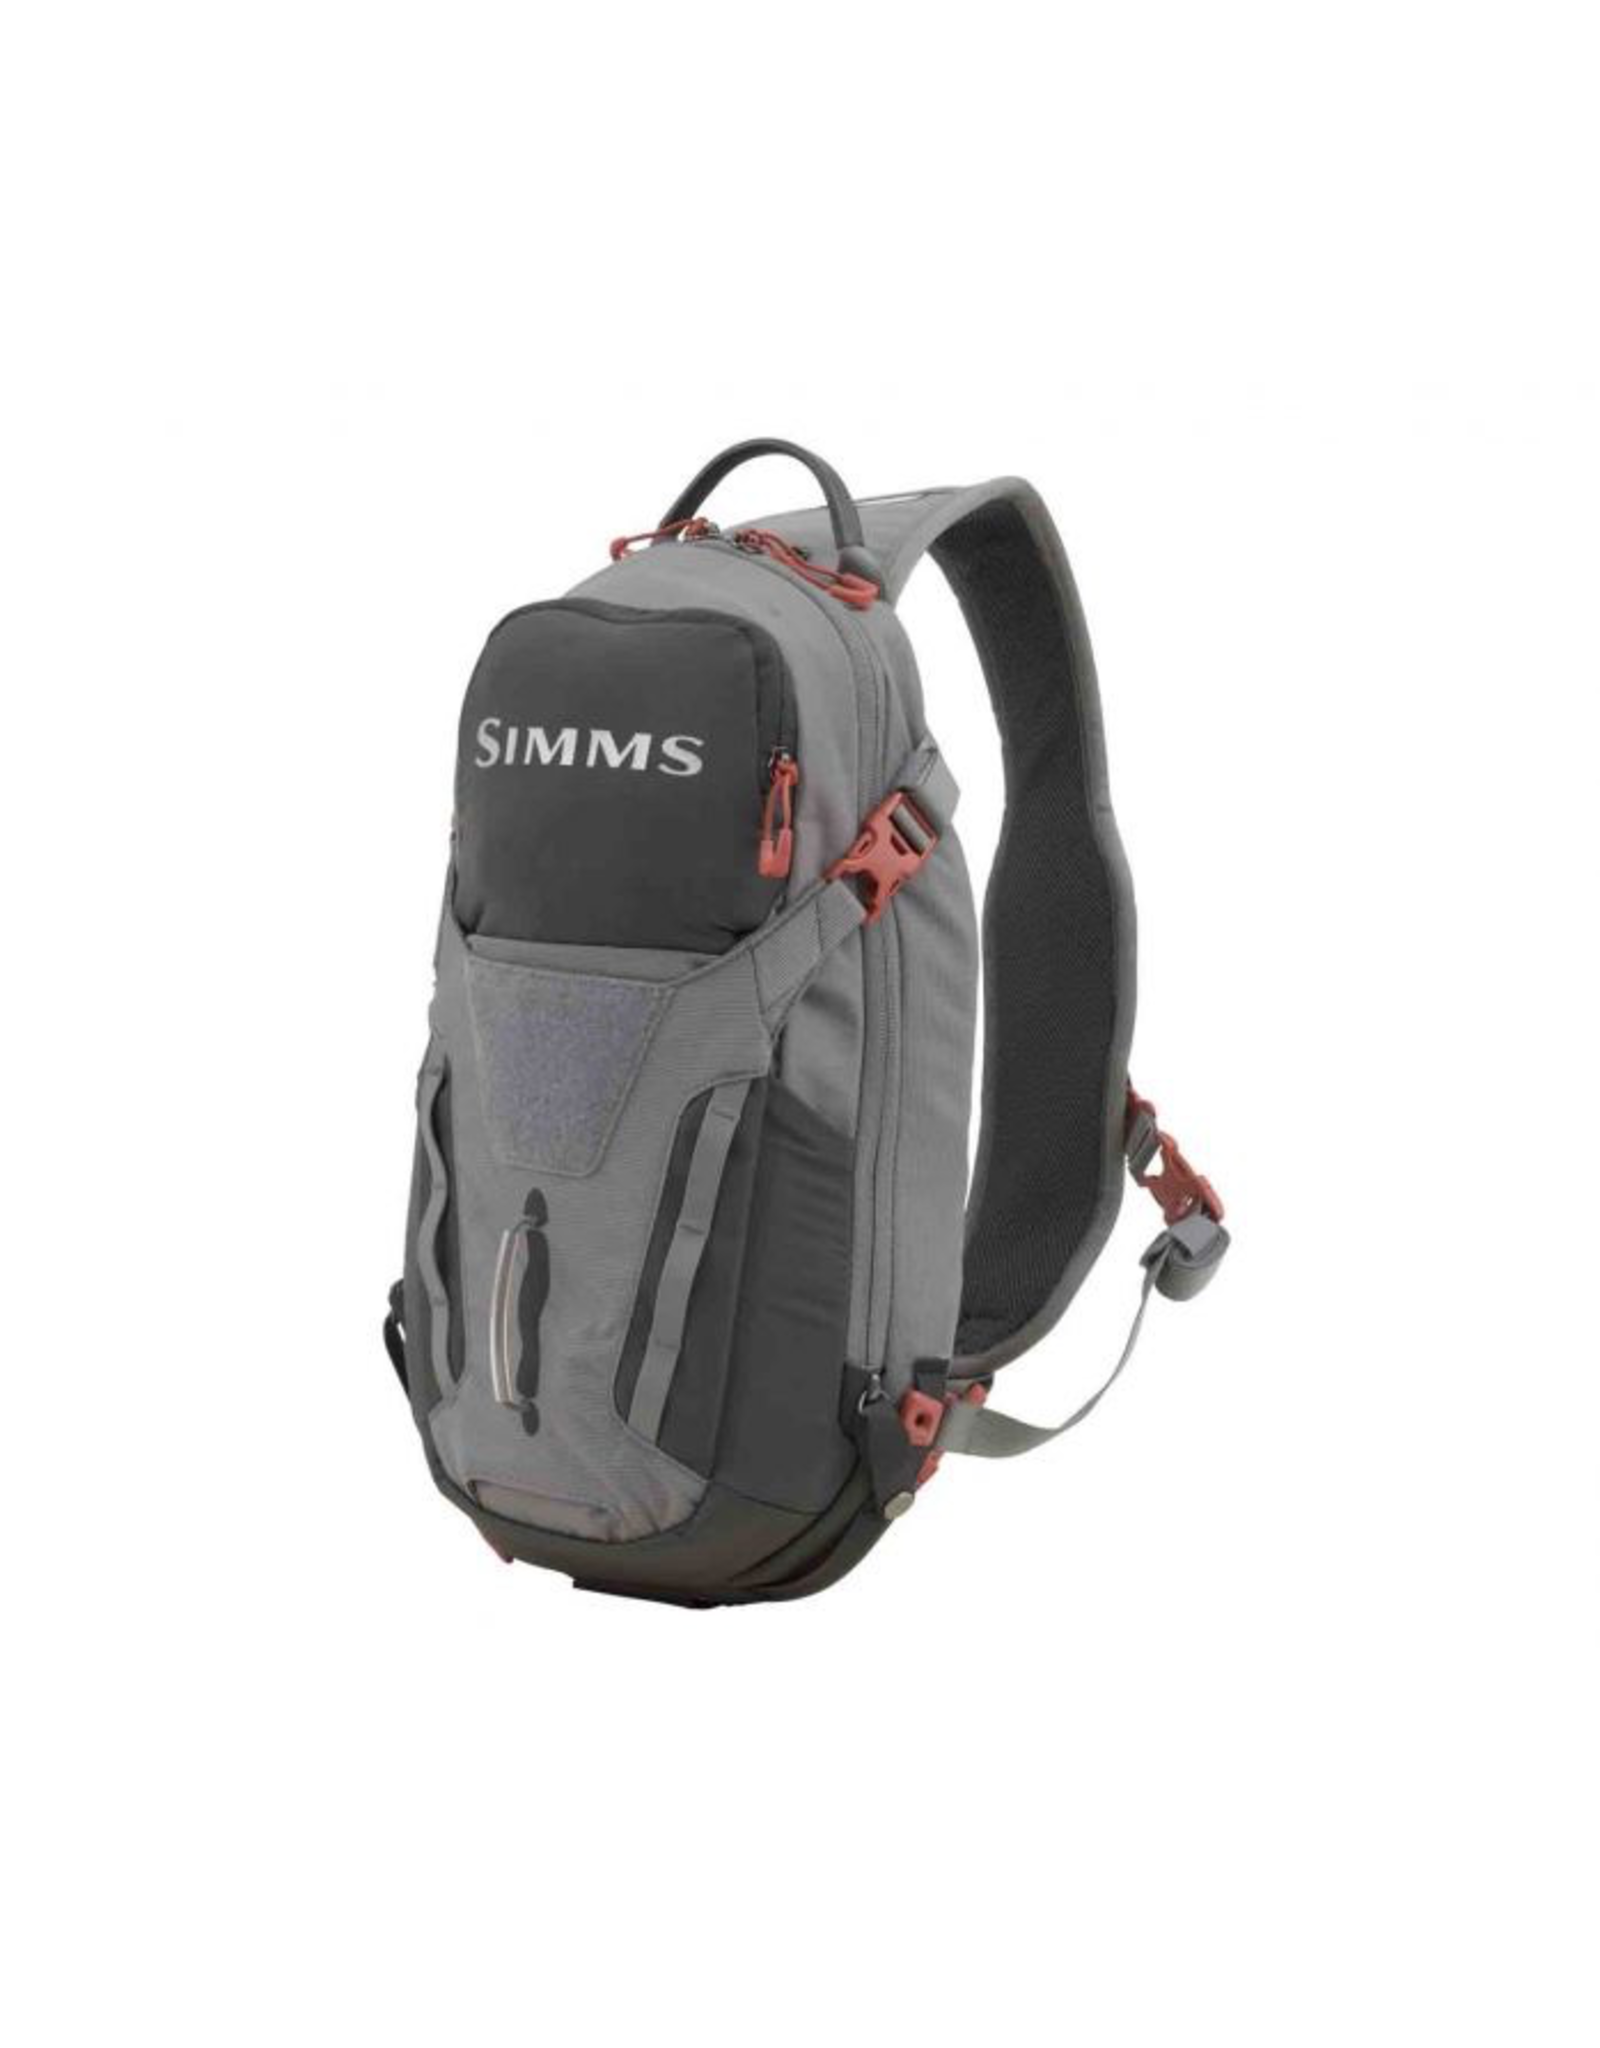 Simms Simms Freestone Ambidextrous Tactical Fishing Sling Pack (Steel)